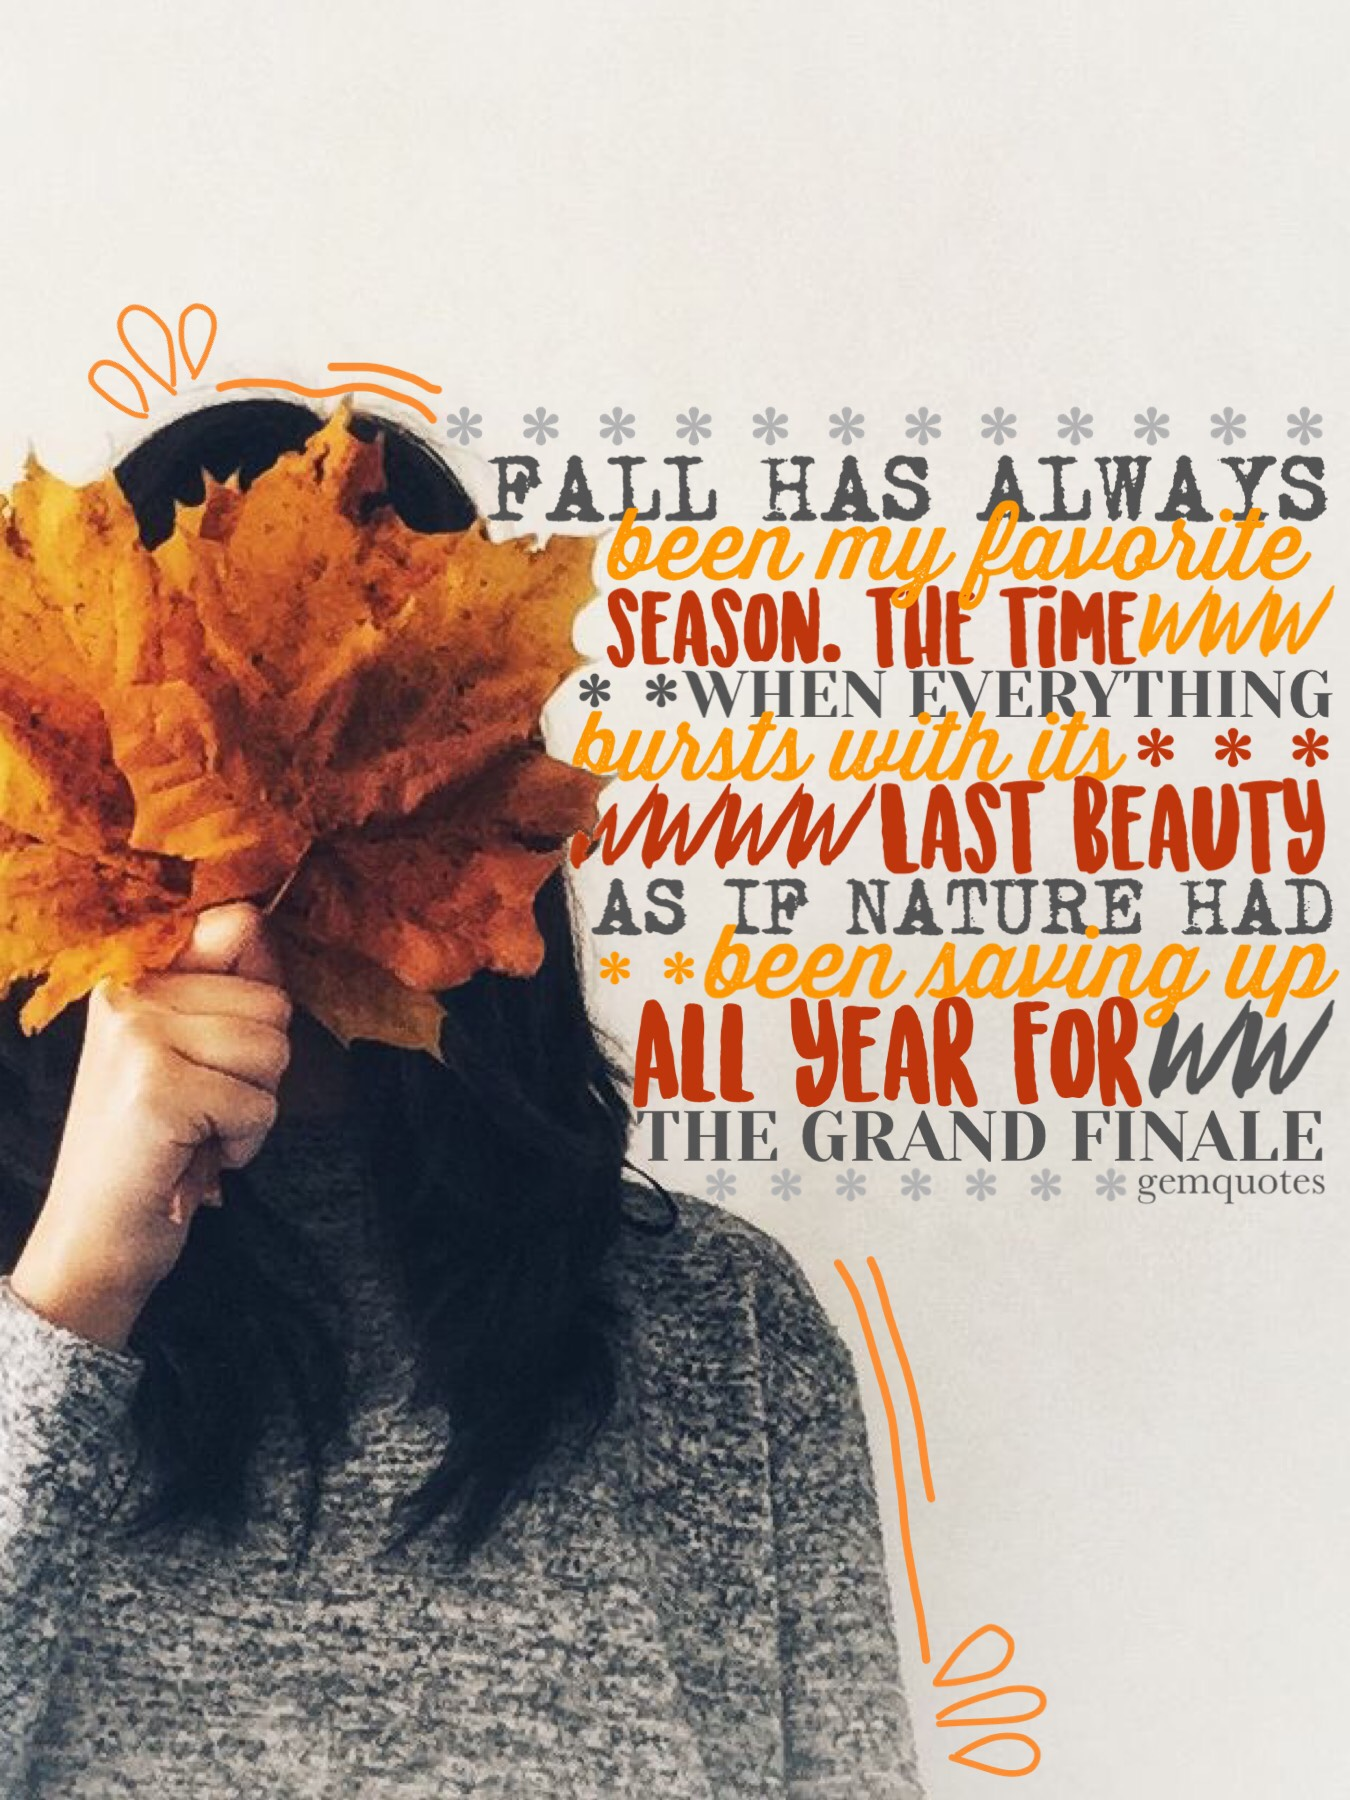 """🍂tap🍂"" A little autumn collage for u gems! Listening to ""Cell Block Tango"" and honestly, really likin' it😂 it's pretty dark, though. Hoping u guys are doing well! Tysm for all ur sweet words, love u all! Sending some fall vibes and cool breezes~~🍁🌬"